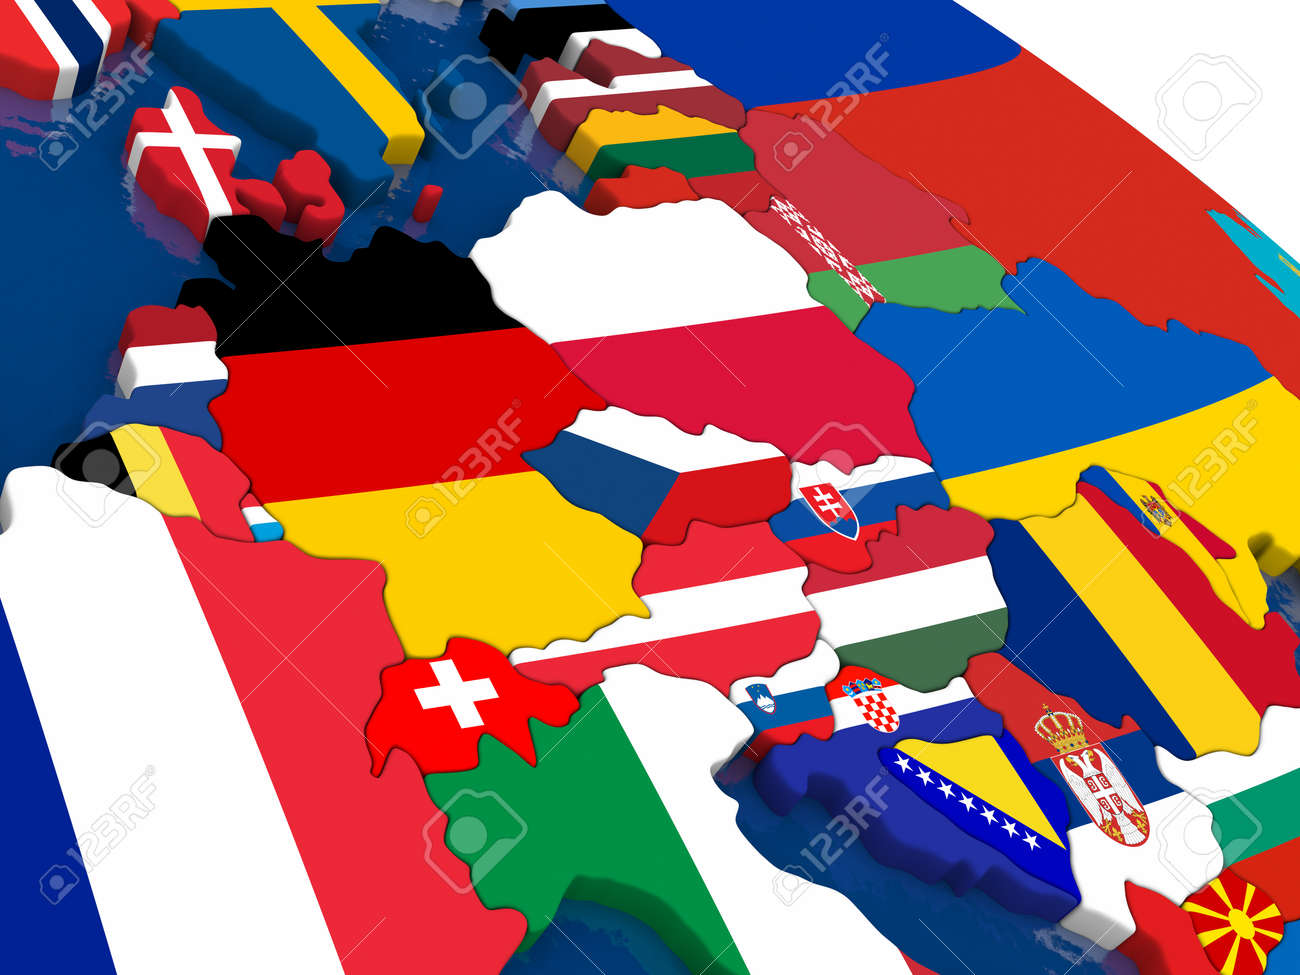 Central Europe Political Map.Map Of Central Europe With Embedded Flags On 3d Political Map